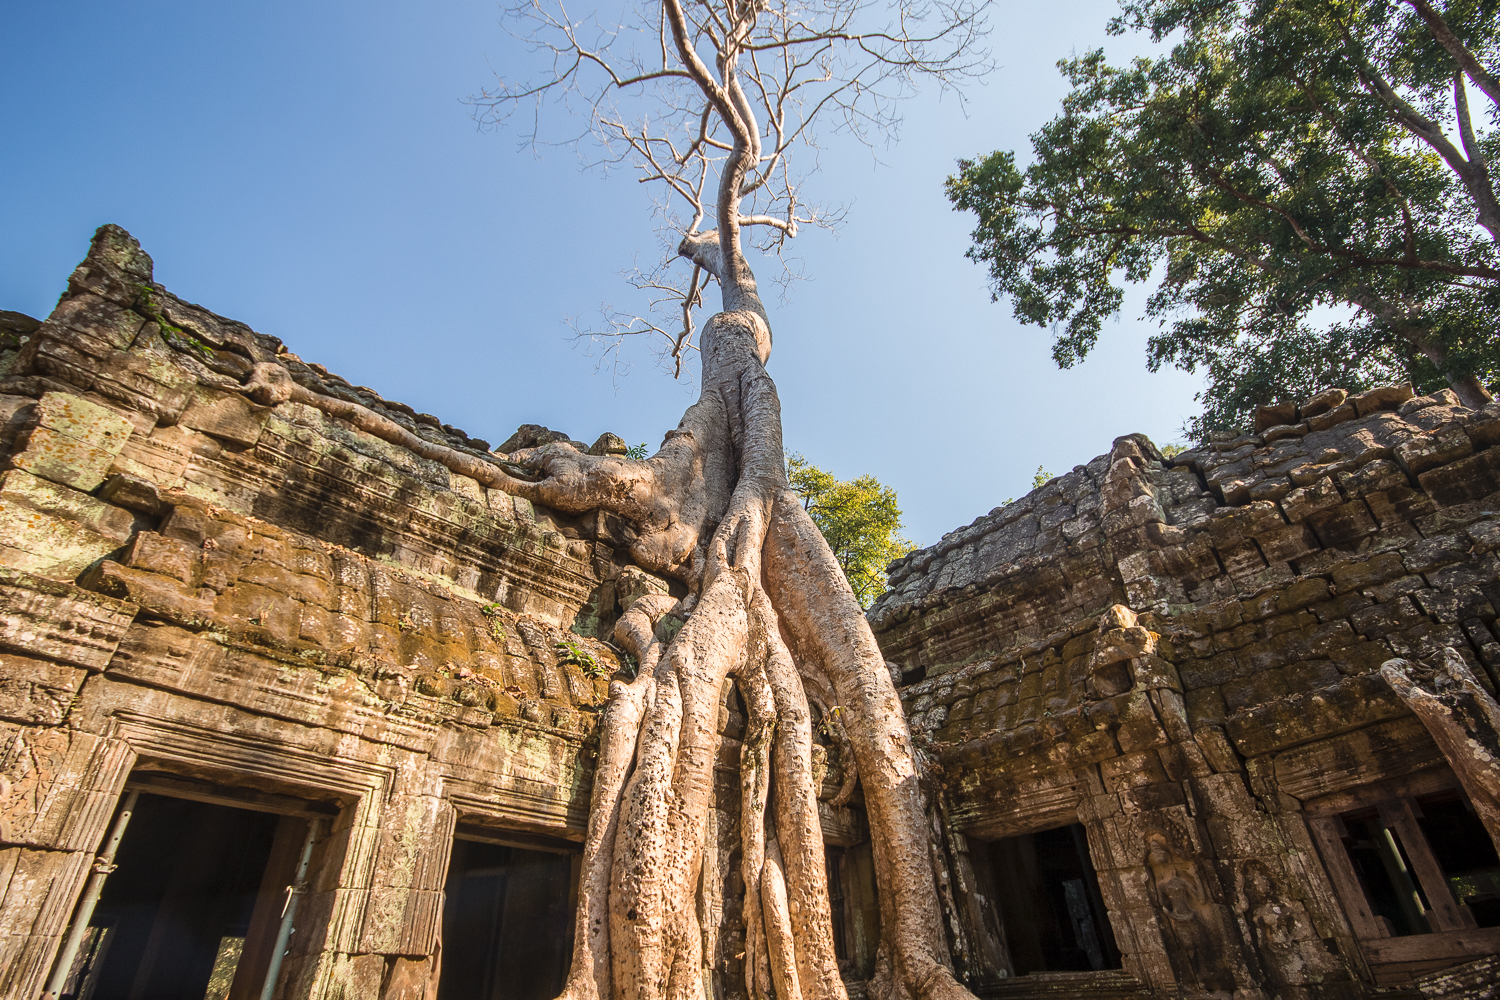 Racines de fromagers sur les temples d'Angkor, Cambodge